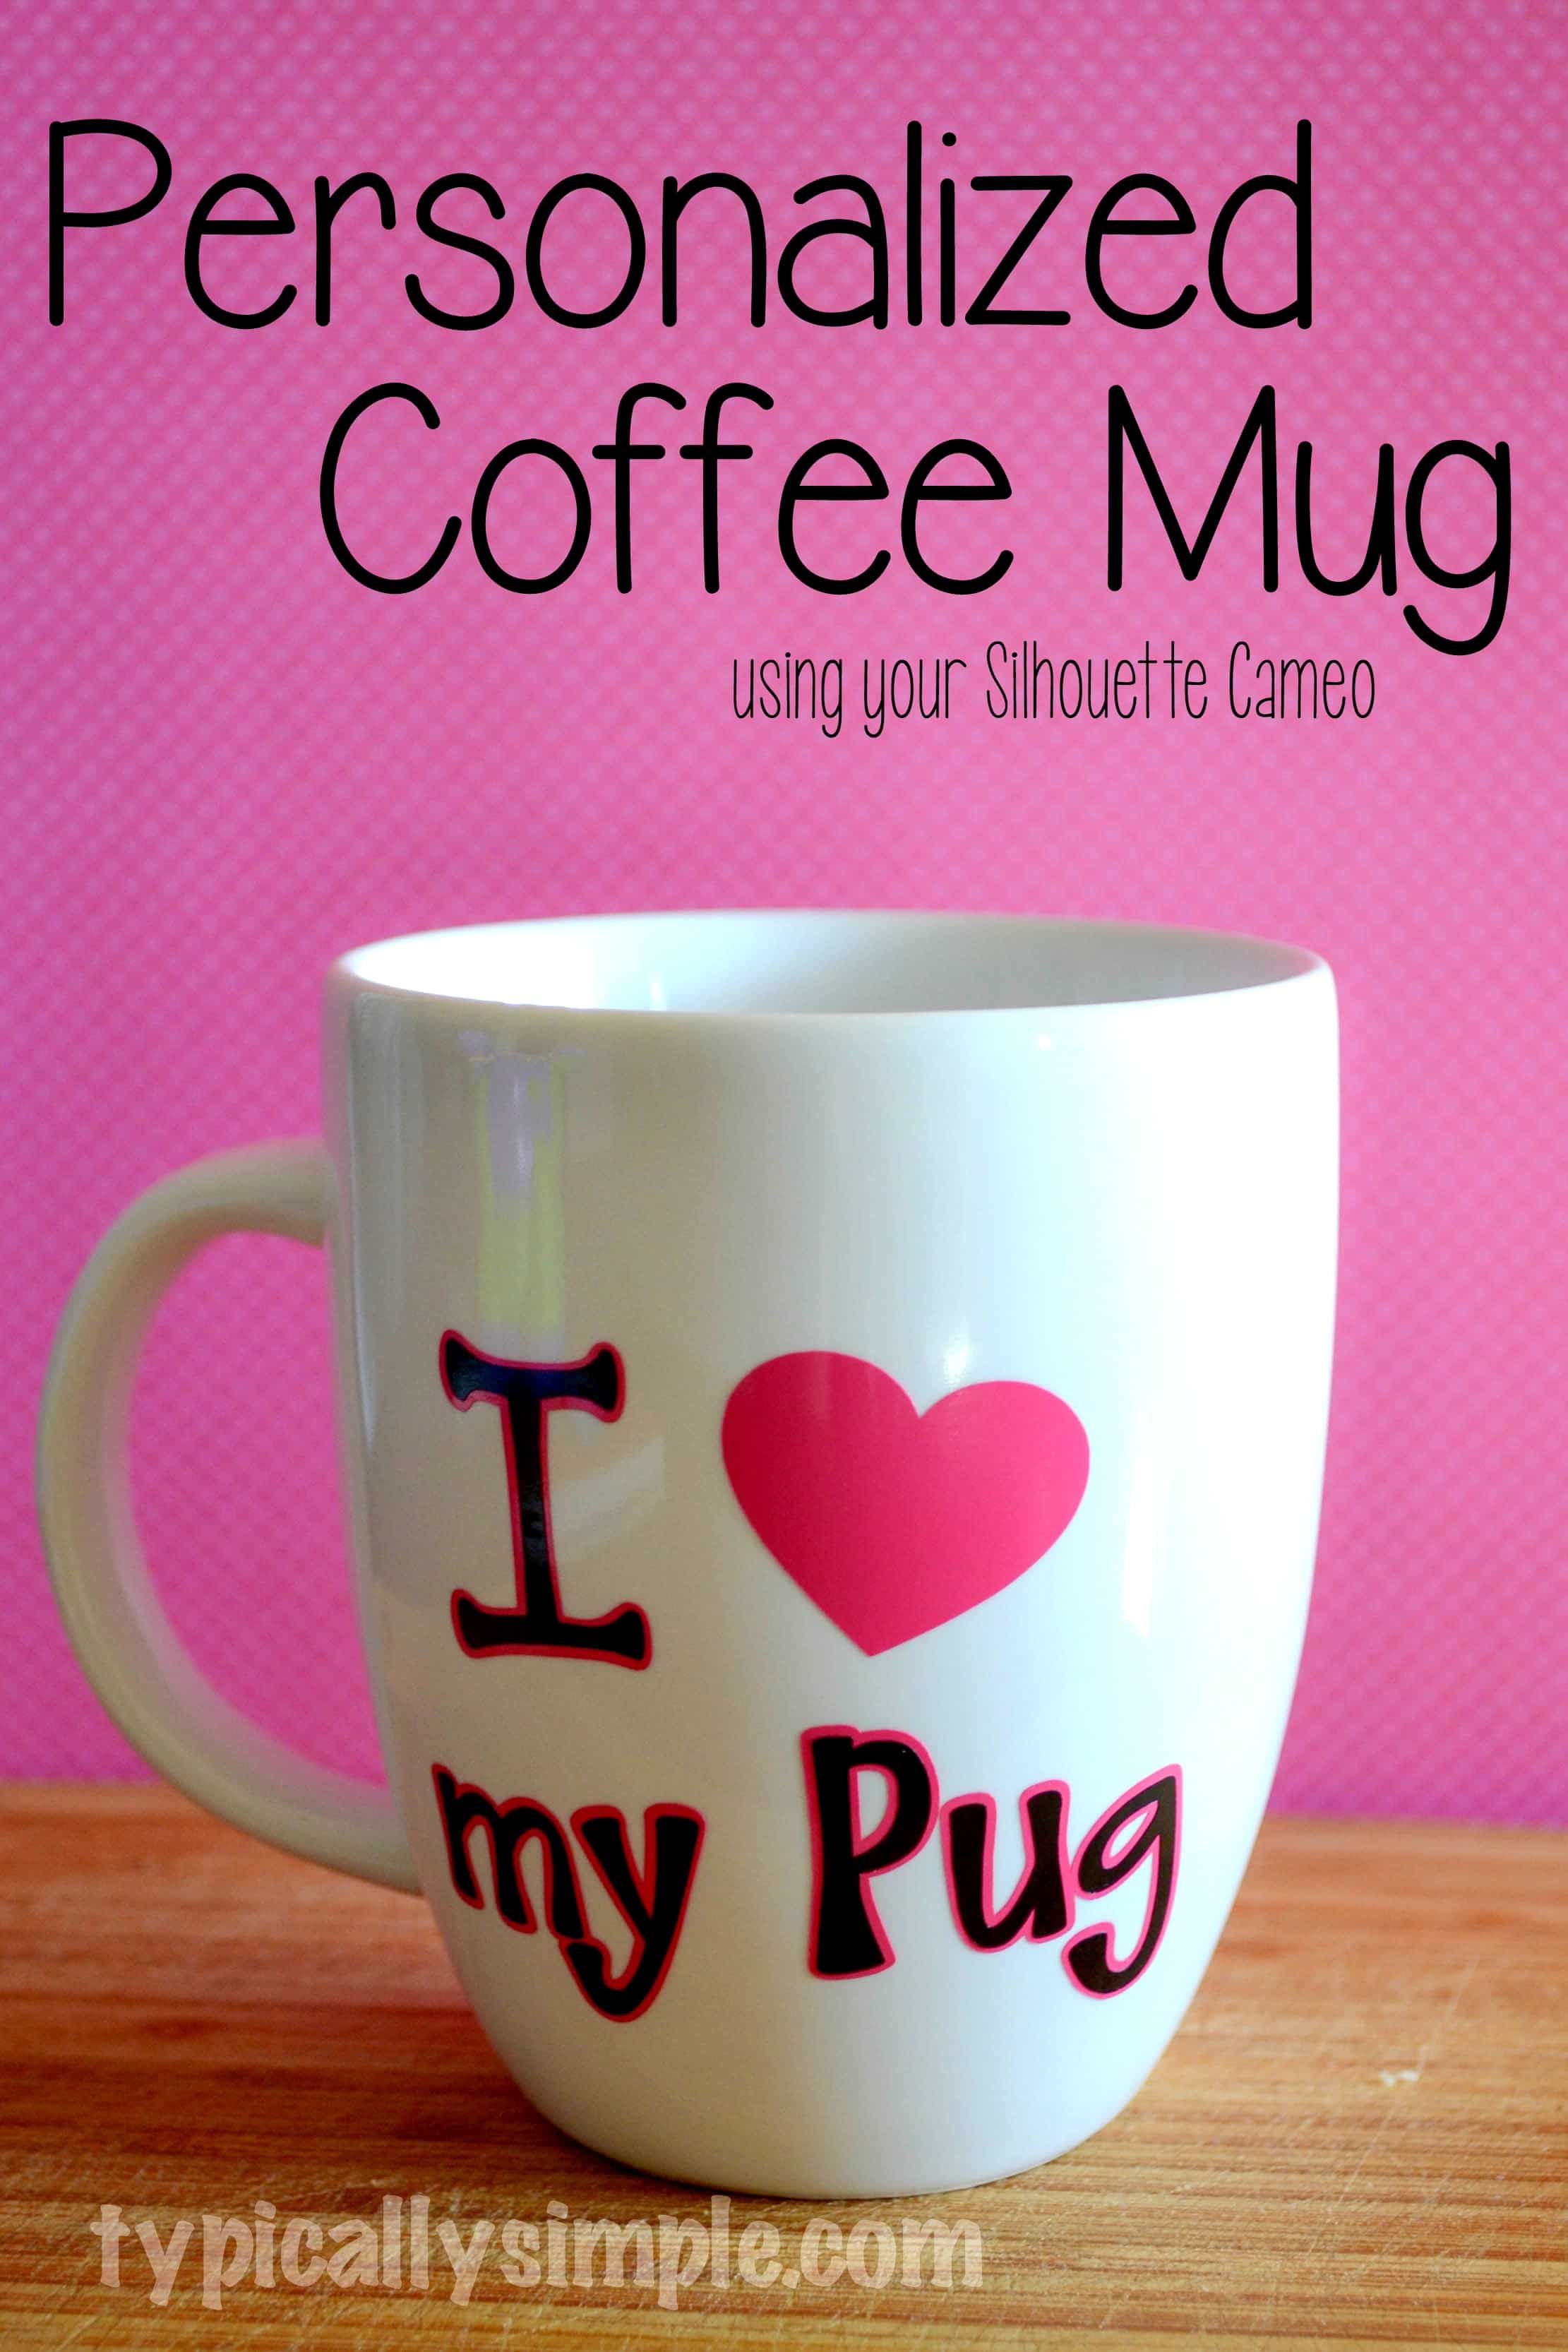 Use your Silhouette Cameo to create a personalized mug using vinyl - a perfect gift!